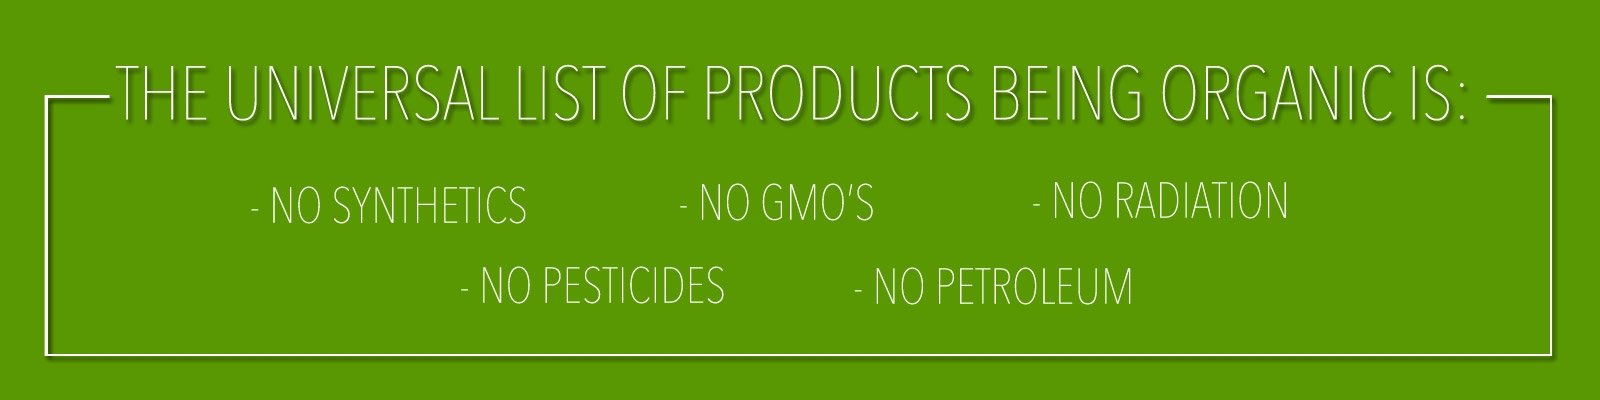 The Universal List of Products Being Organic